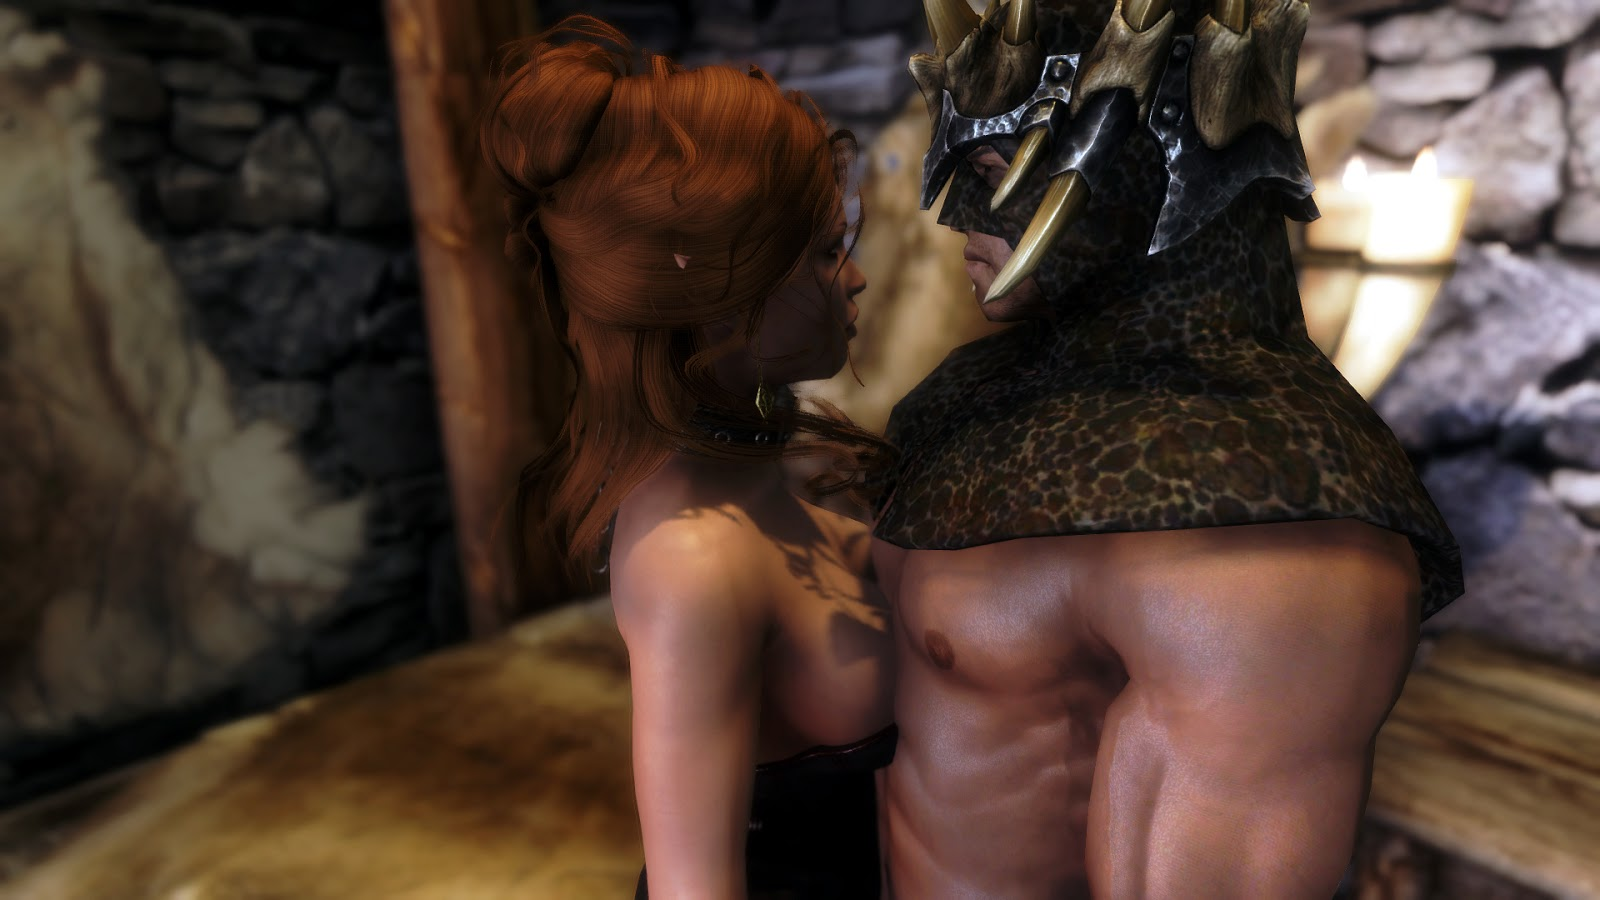 Skyrim sex scene nsfw video